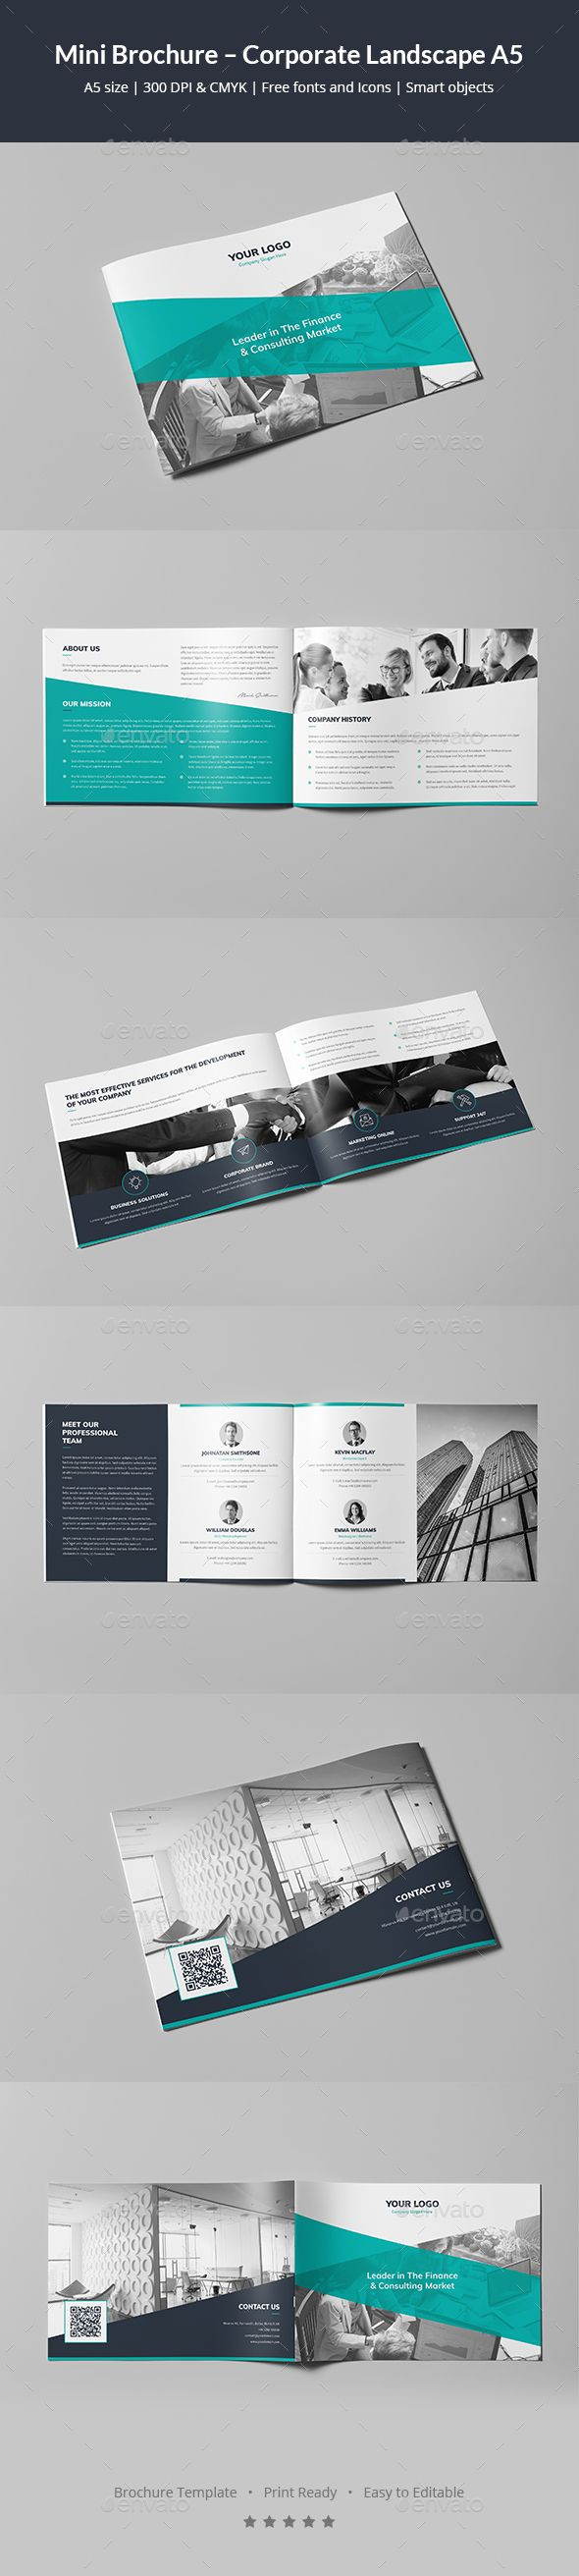 Best GraphicRiver Templates Images On Pinterest - Mini brochure template